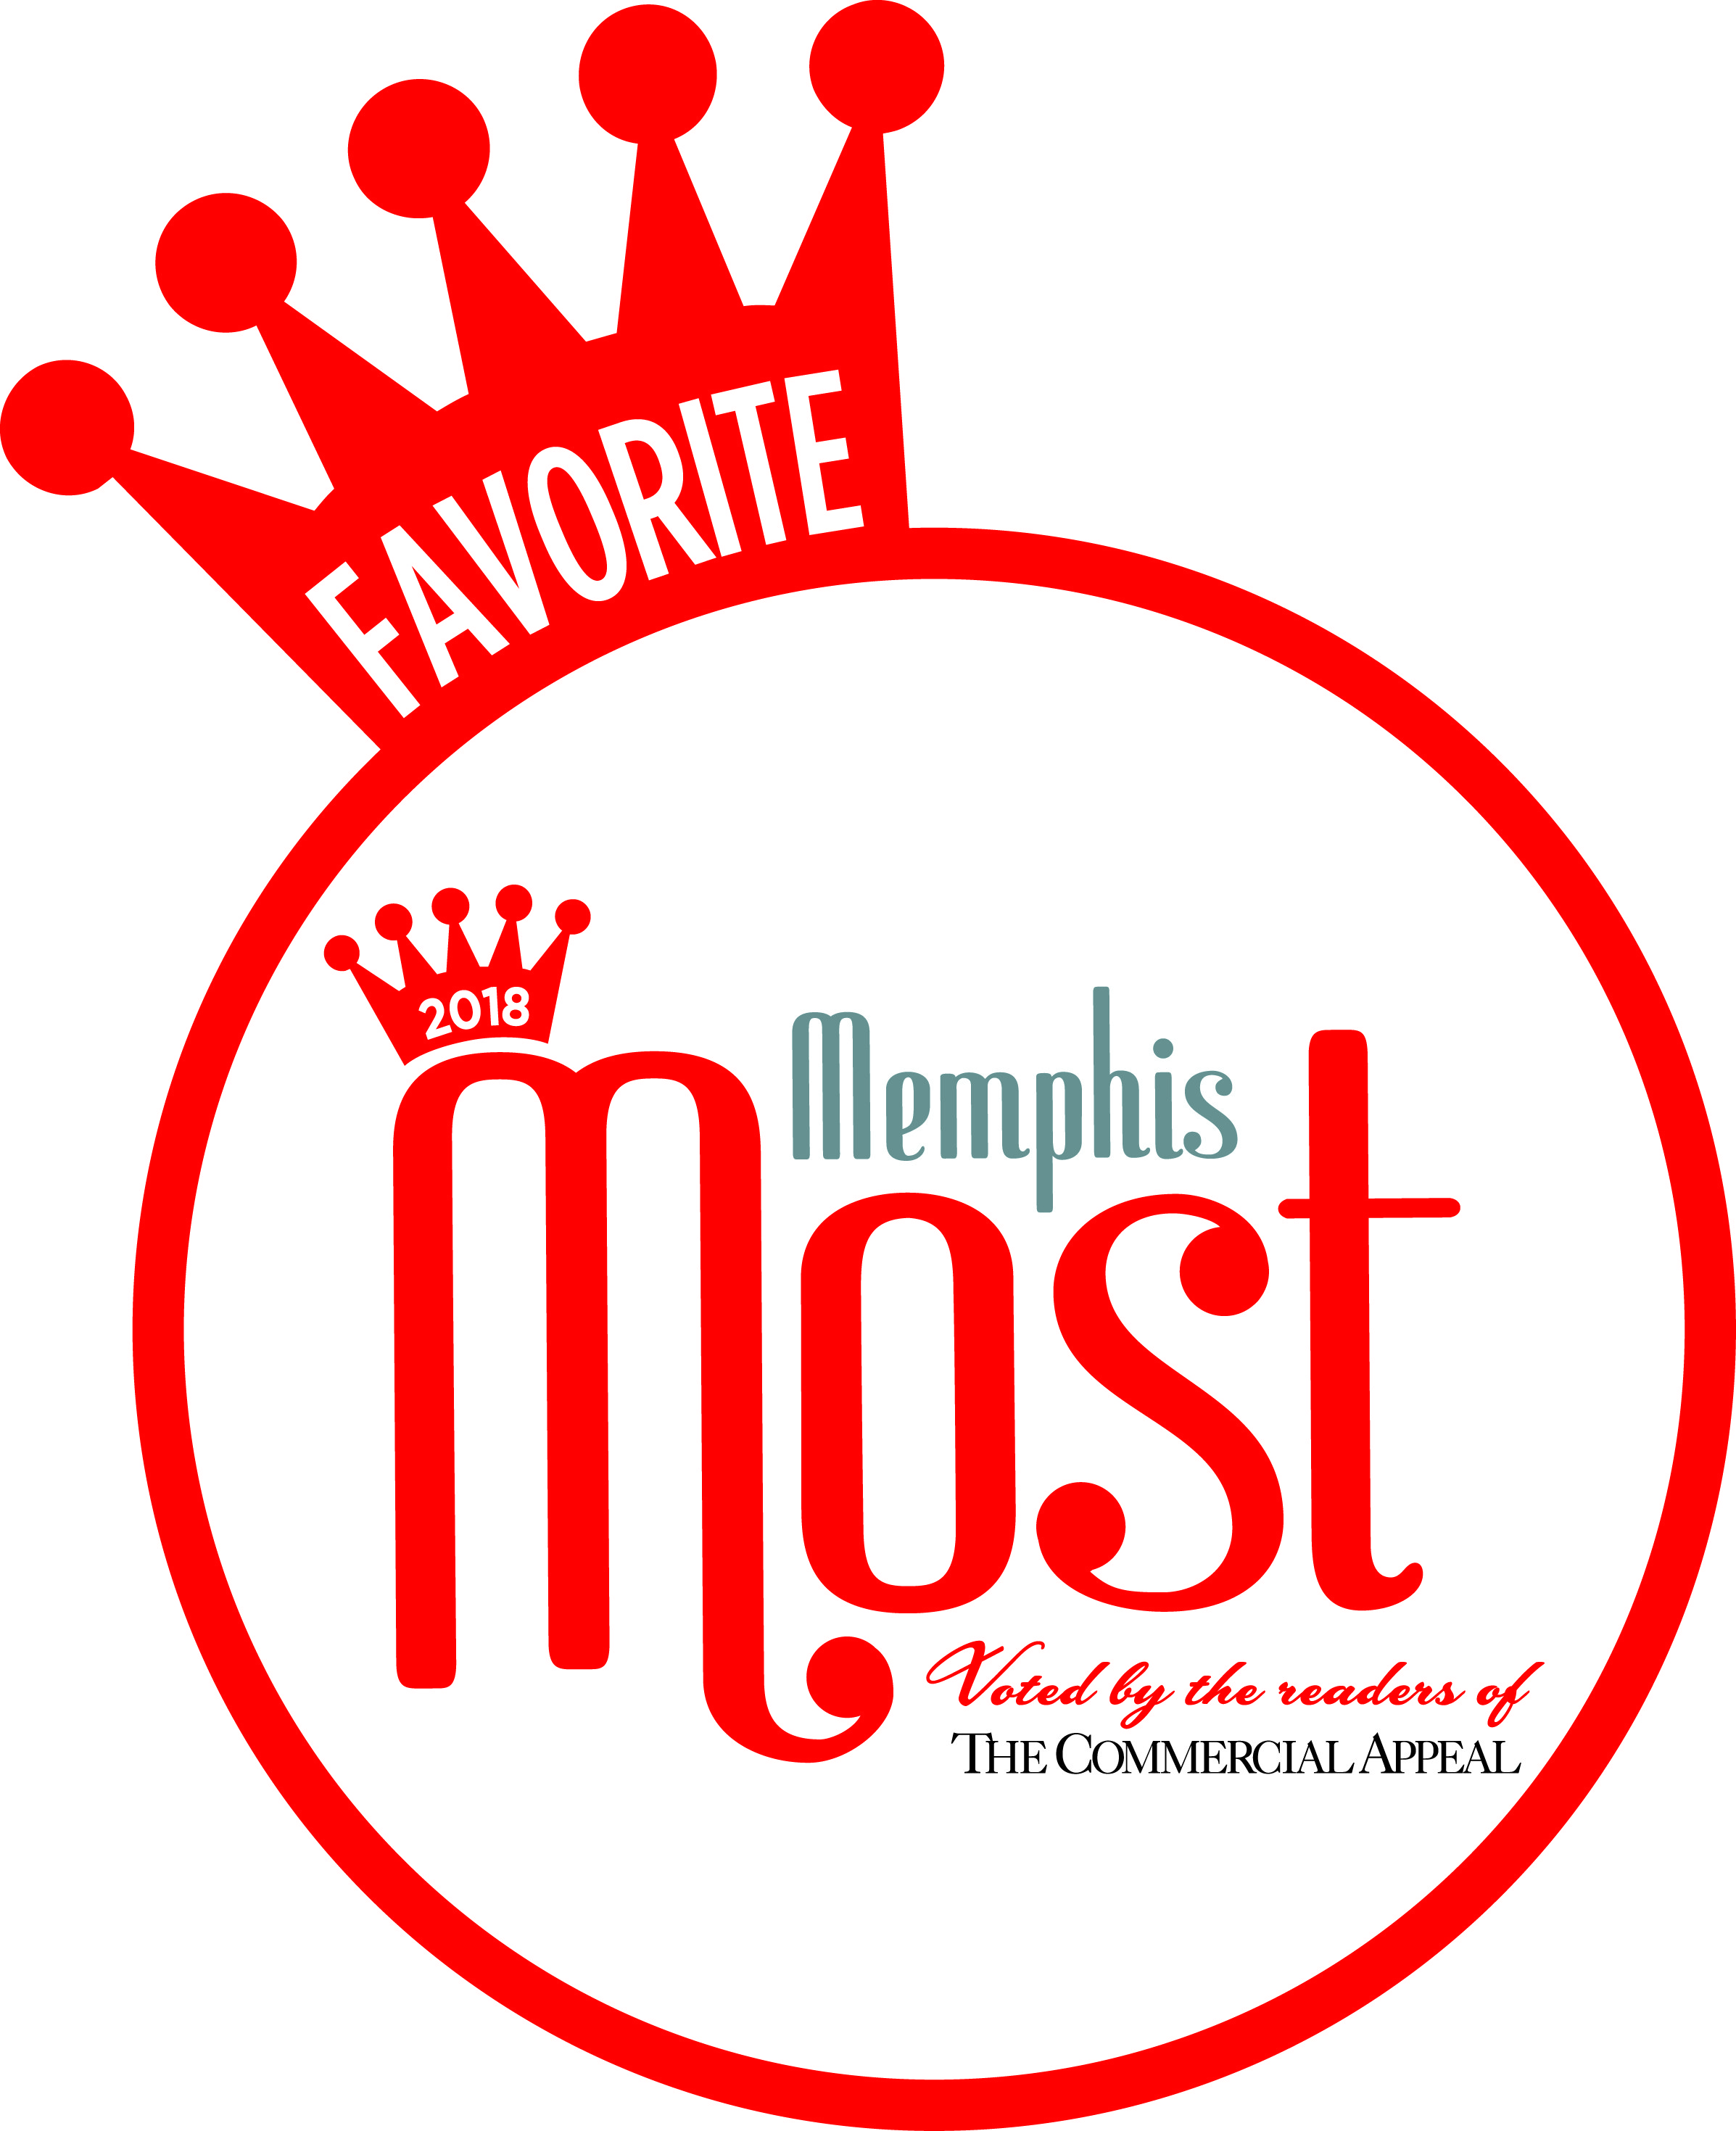 stern,cardio,itg,diet,vote,voting,memphis,best,commercial,appeal